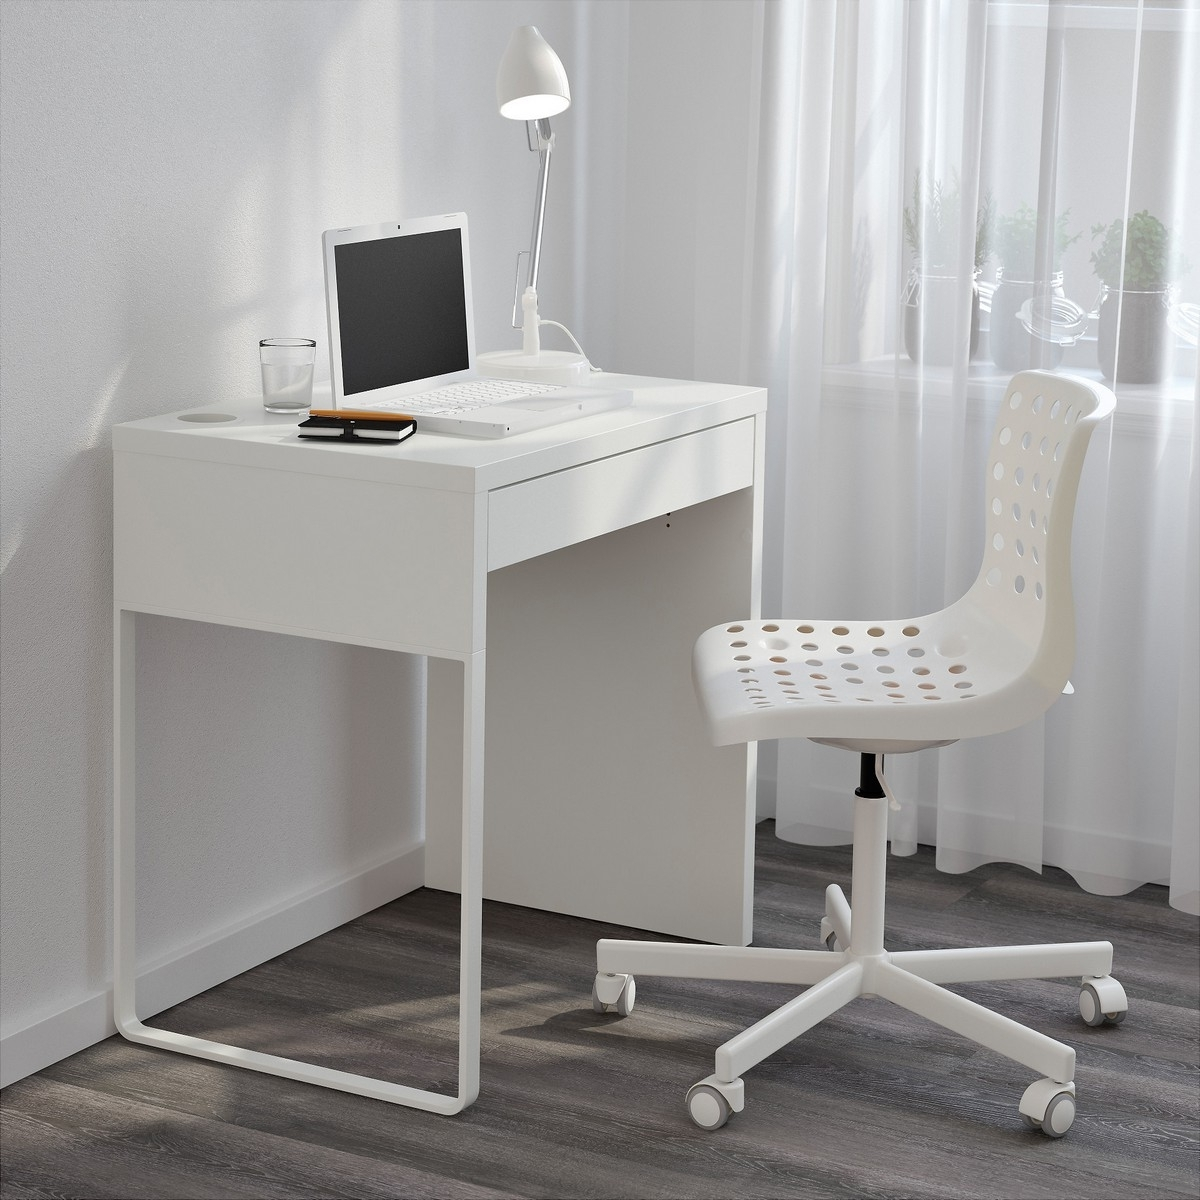 Fashionable Computer Desks For Very Small Spaces Inside Narrow Computer Desk Ikea Micke White For Small Space (View 7 of 20)